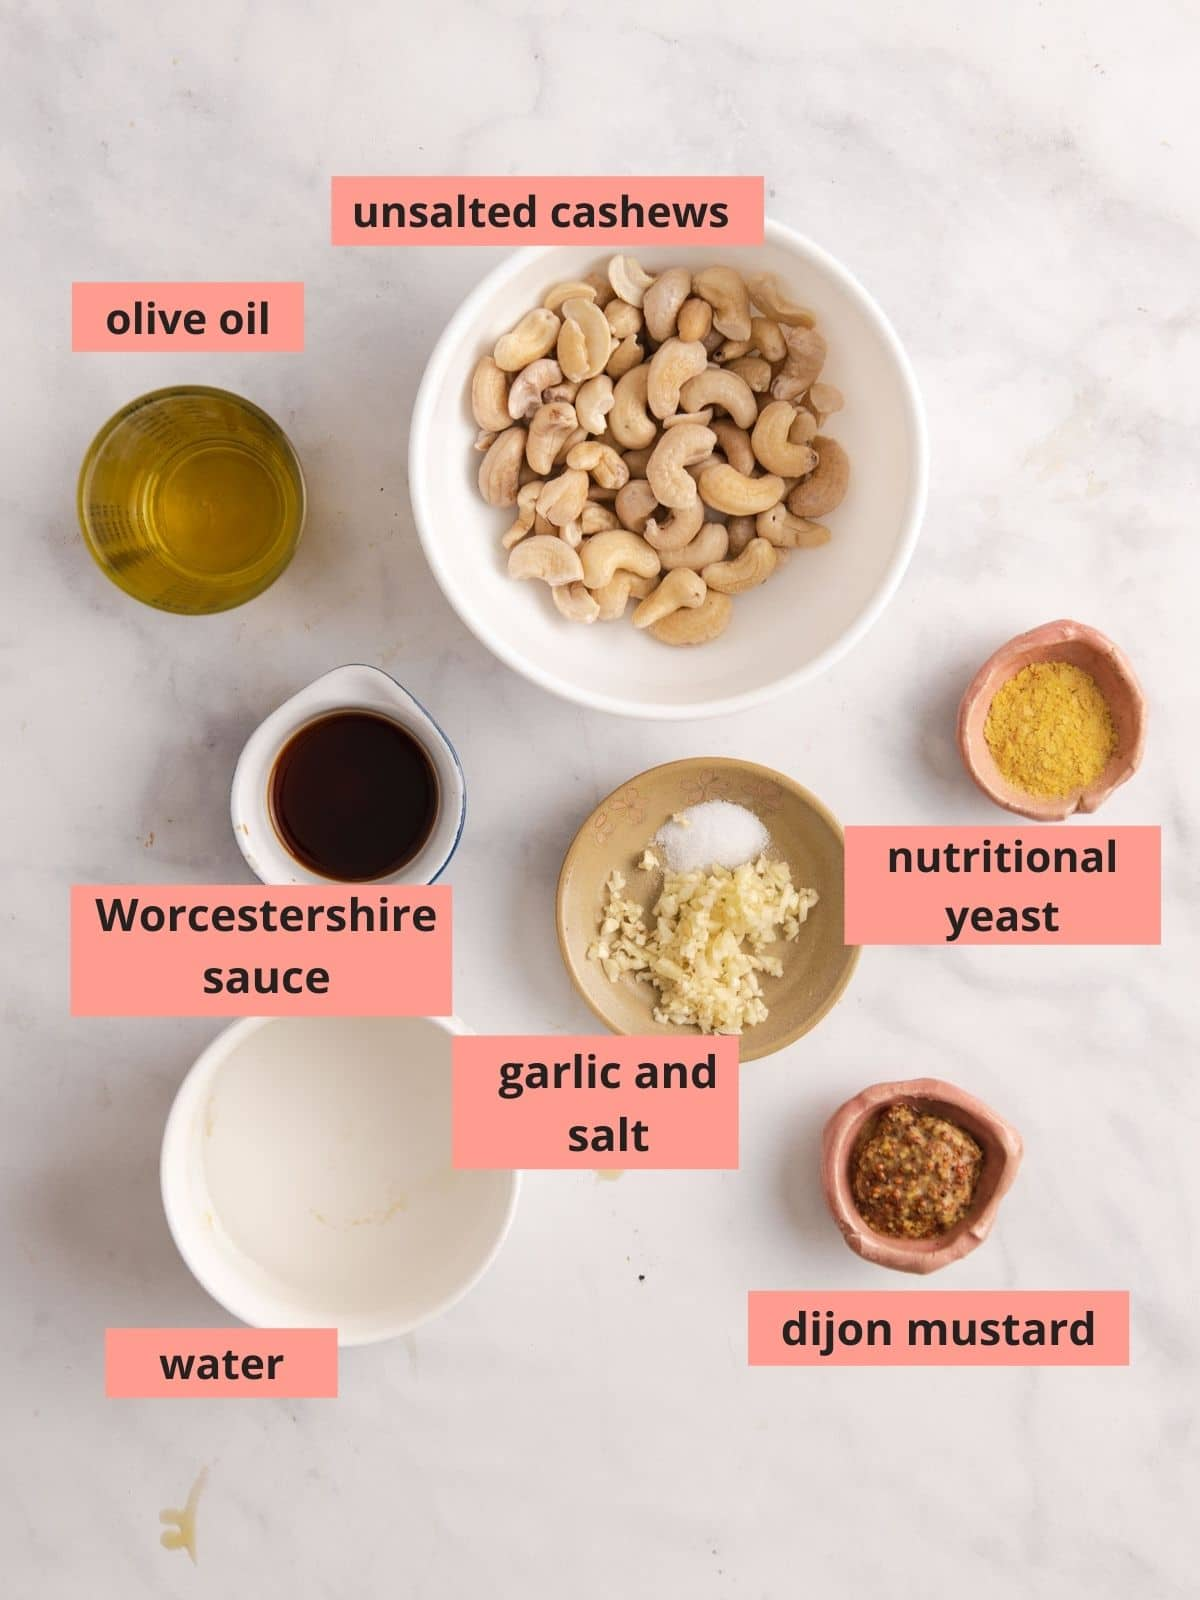 Ingredients used to make caesar dressing